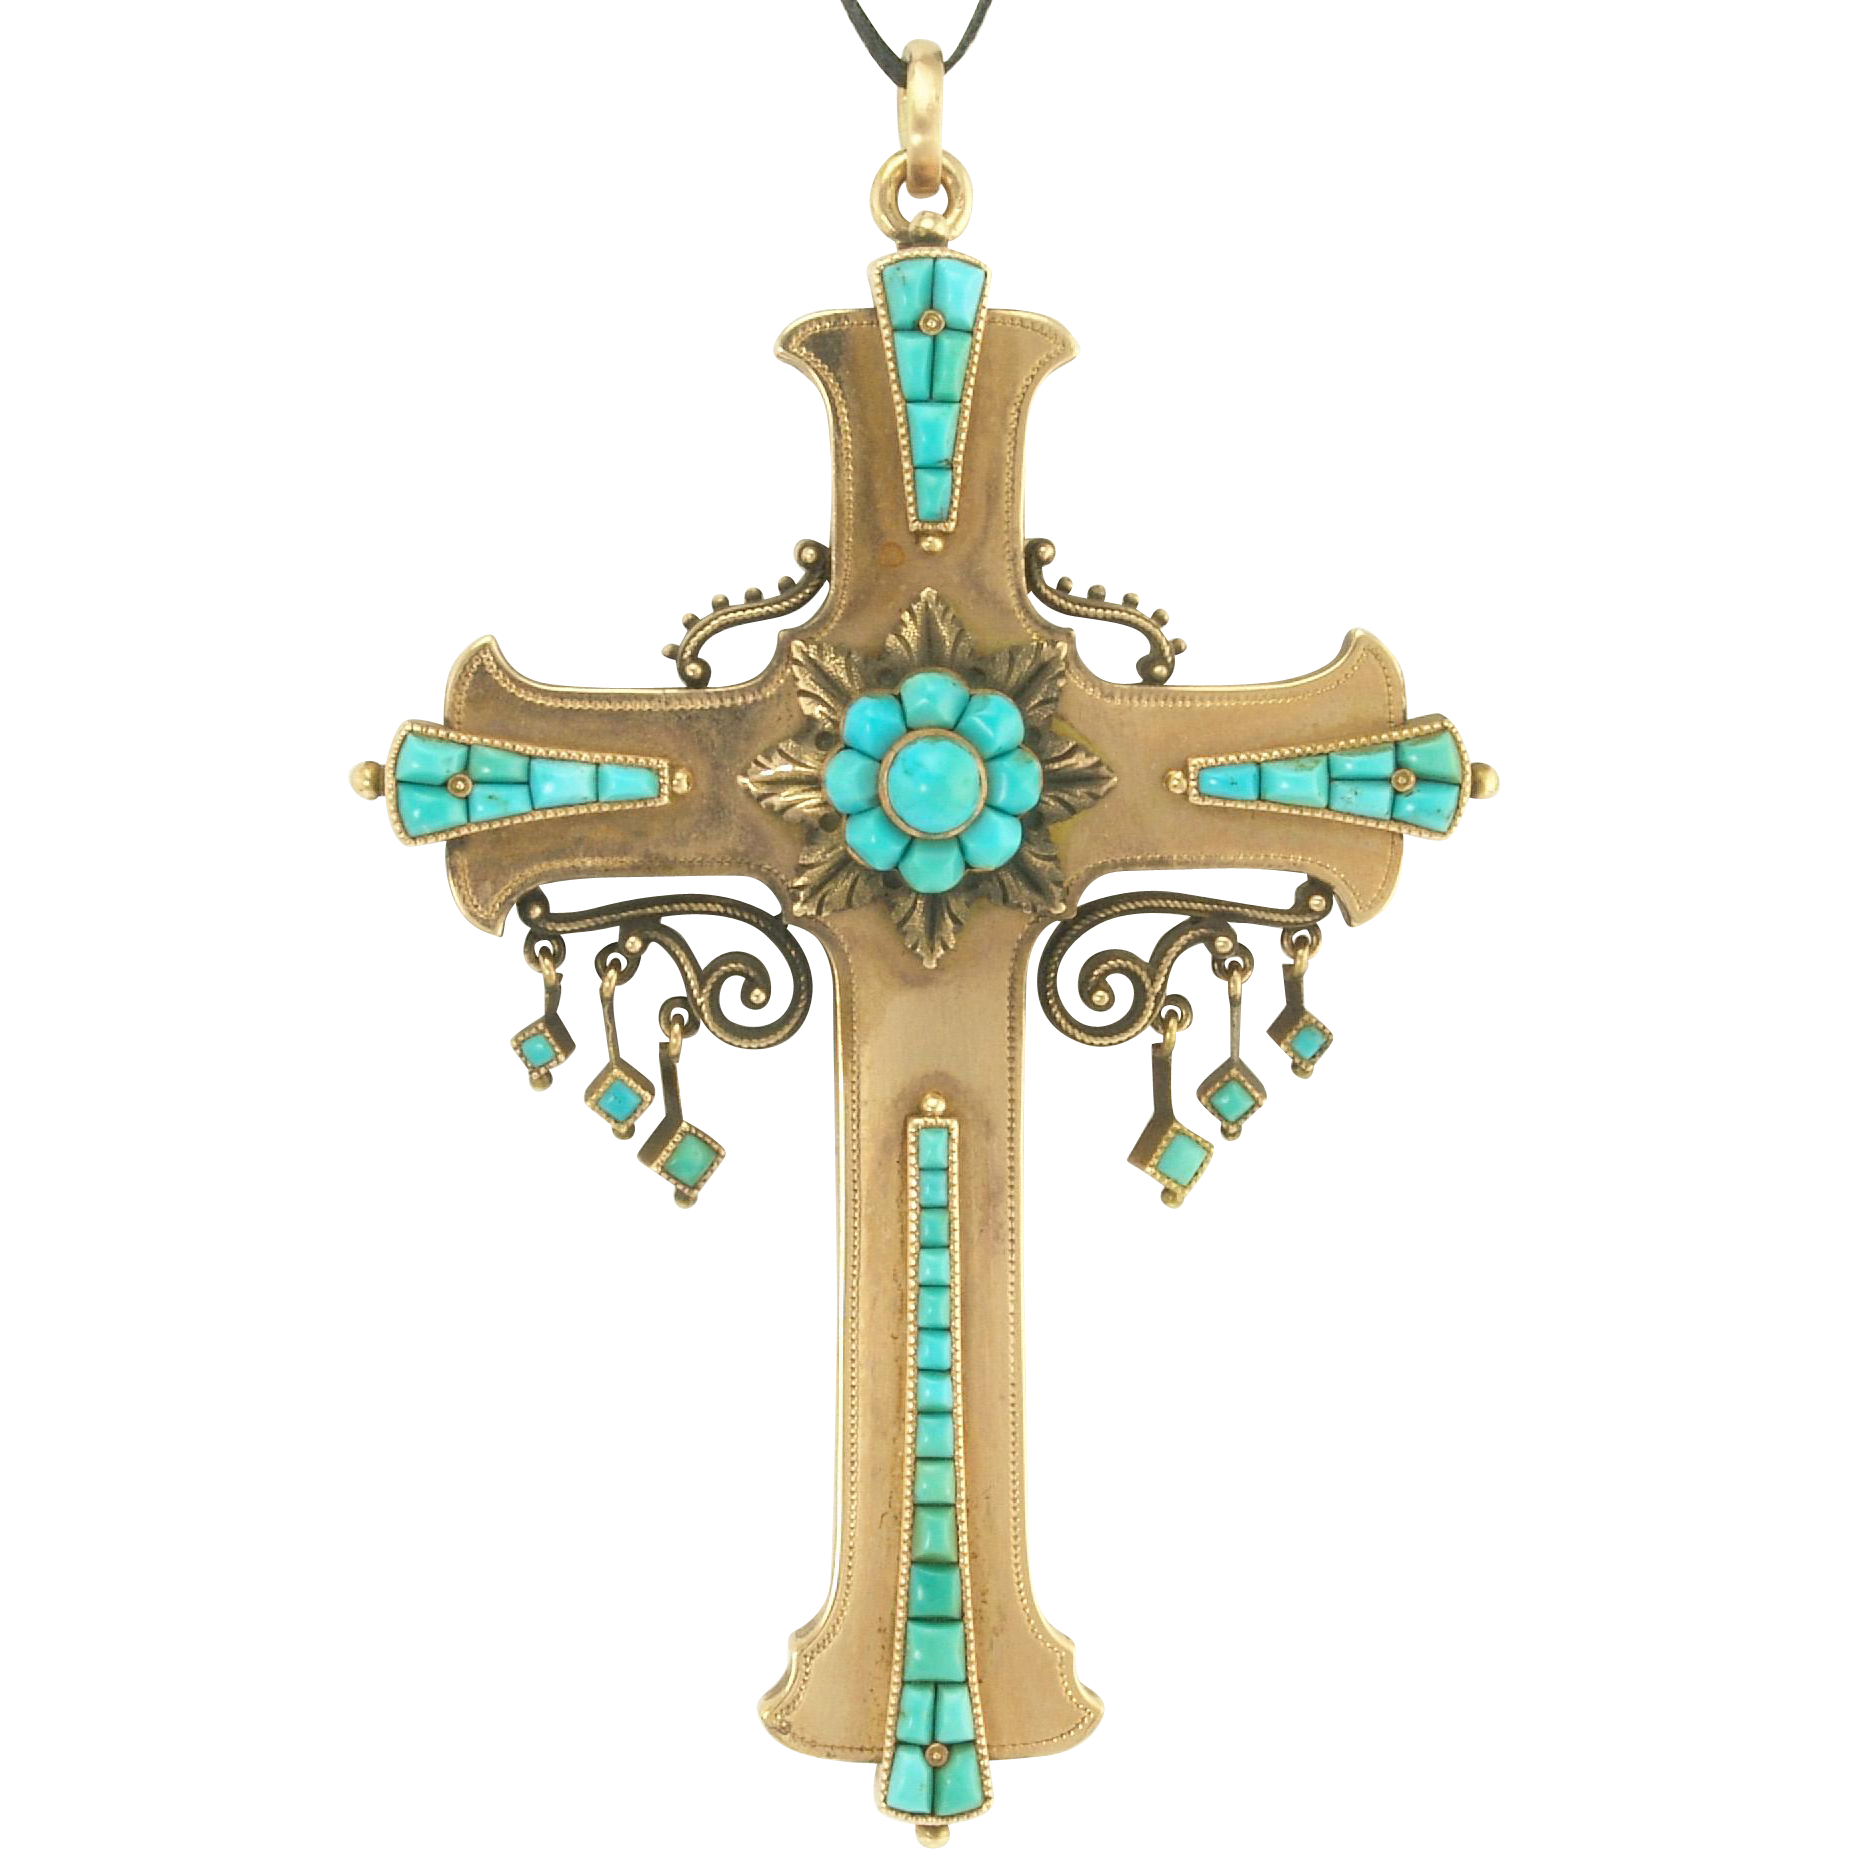 Grand Scale Antique Victorian Persian Turquoise Cross Pendant Brooch in 14k Gold